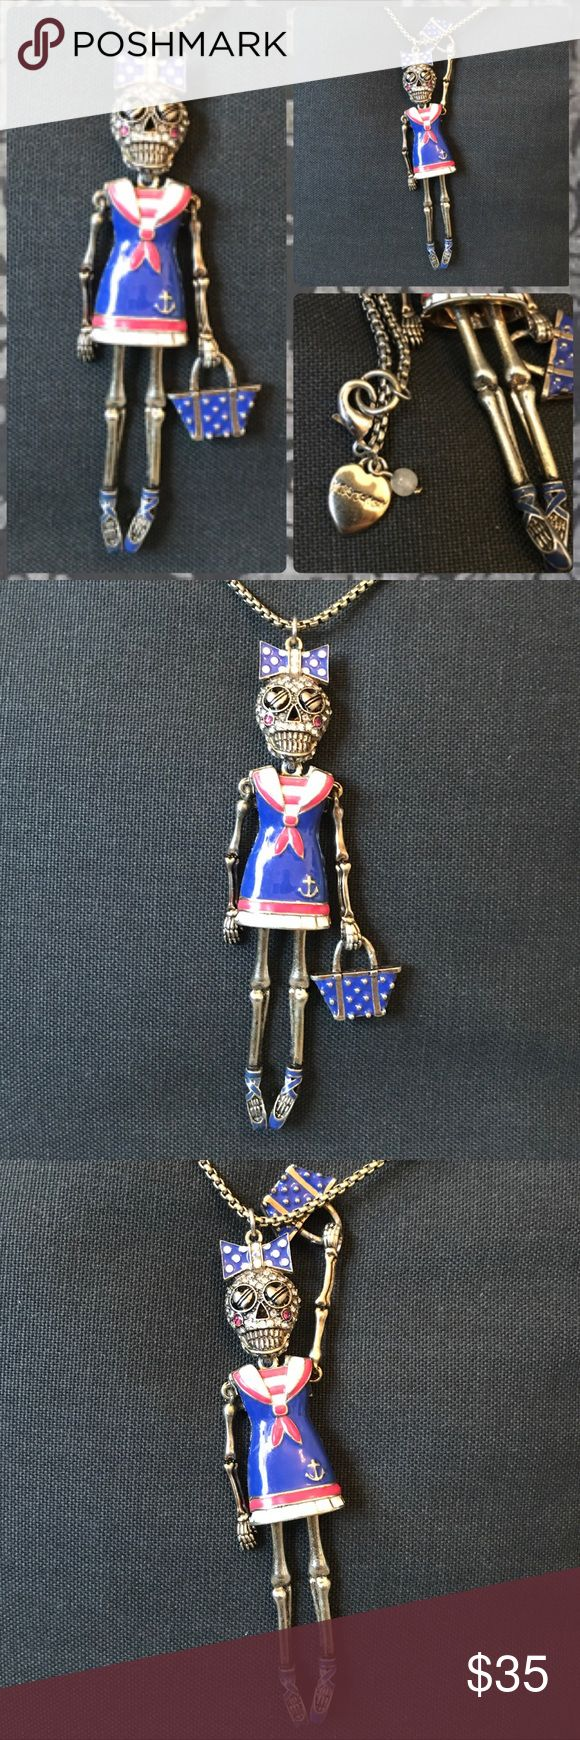 Authentic Betsey Johnson Sailor Skeleton Girl Authentic brand Betsey Johnson necklace and earrings featuring a nautical sailor bedazzled skeleton girl with a purse, shiny jewels, bow, ballerina shoes and sailor dress in pink and blue with heart eyes. Head, limbs, and purse are all able to move. Chain is very long and nice quality. Now and bag features polka dots. I have several other BJ items up for sale, I bundle at 20% off and ship next day, let me know if you are interested. Great for…